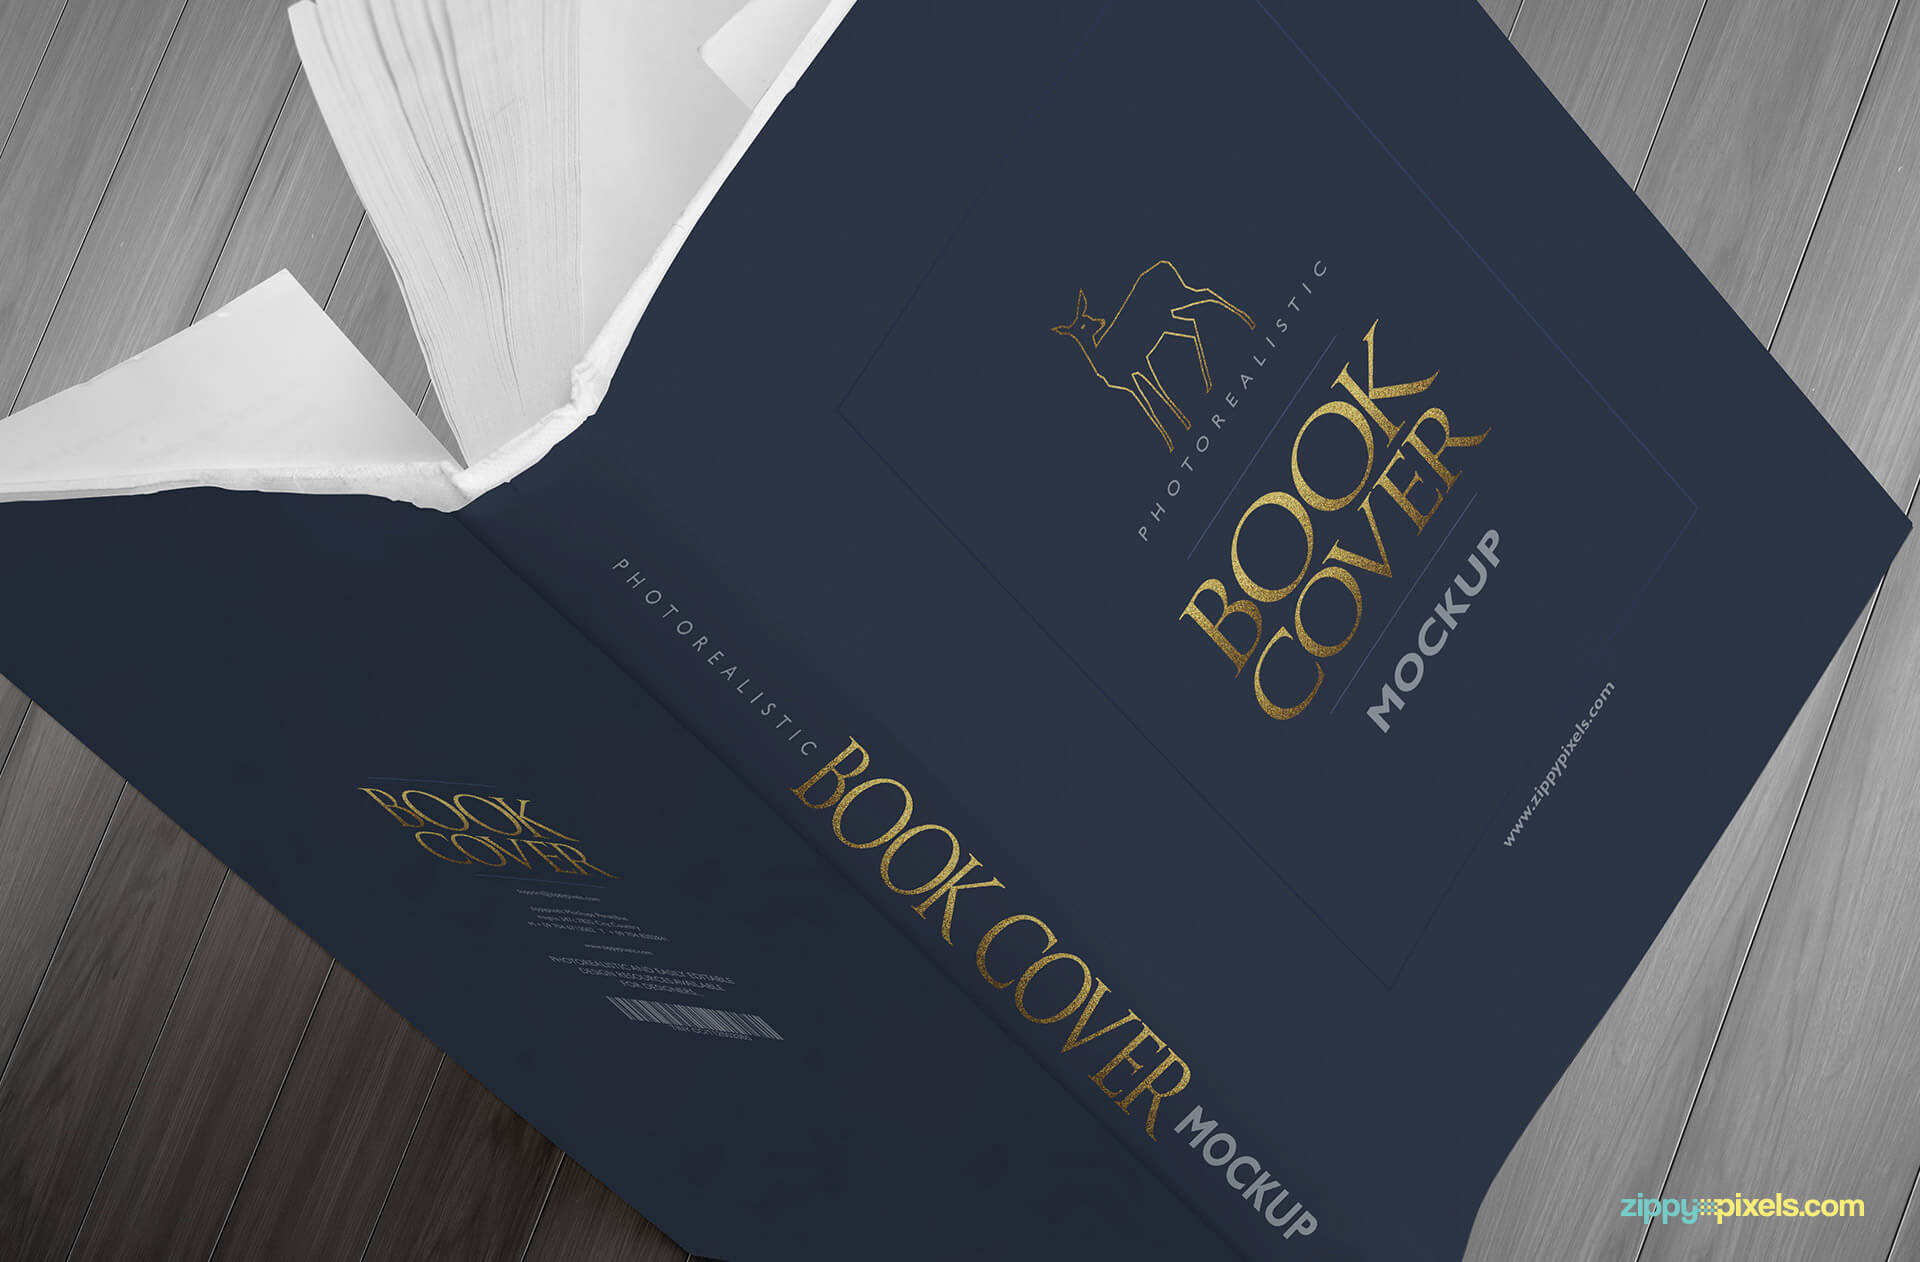 Realistic book mockup showing a book cover design in a ductch angle view